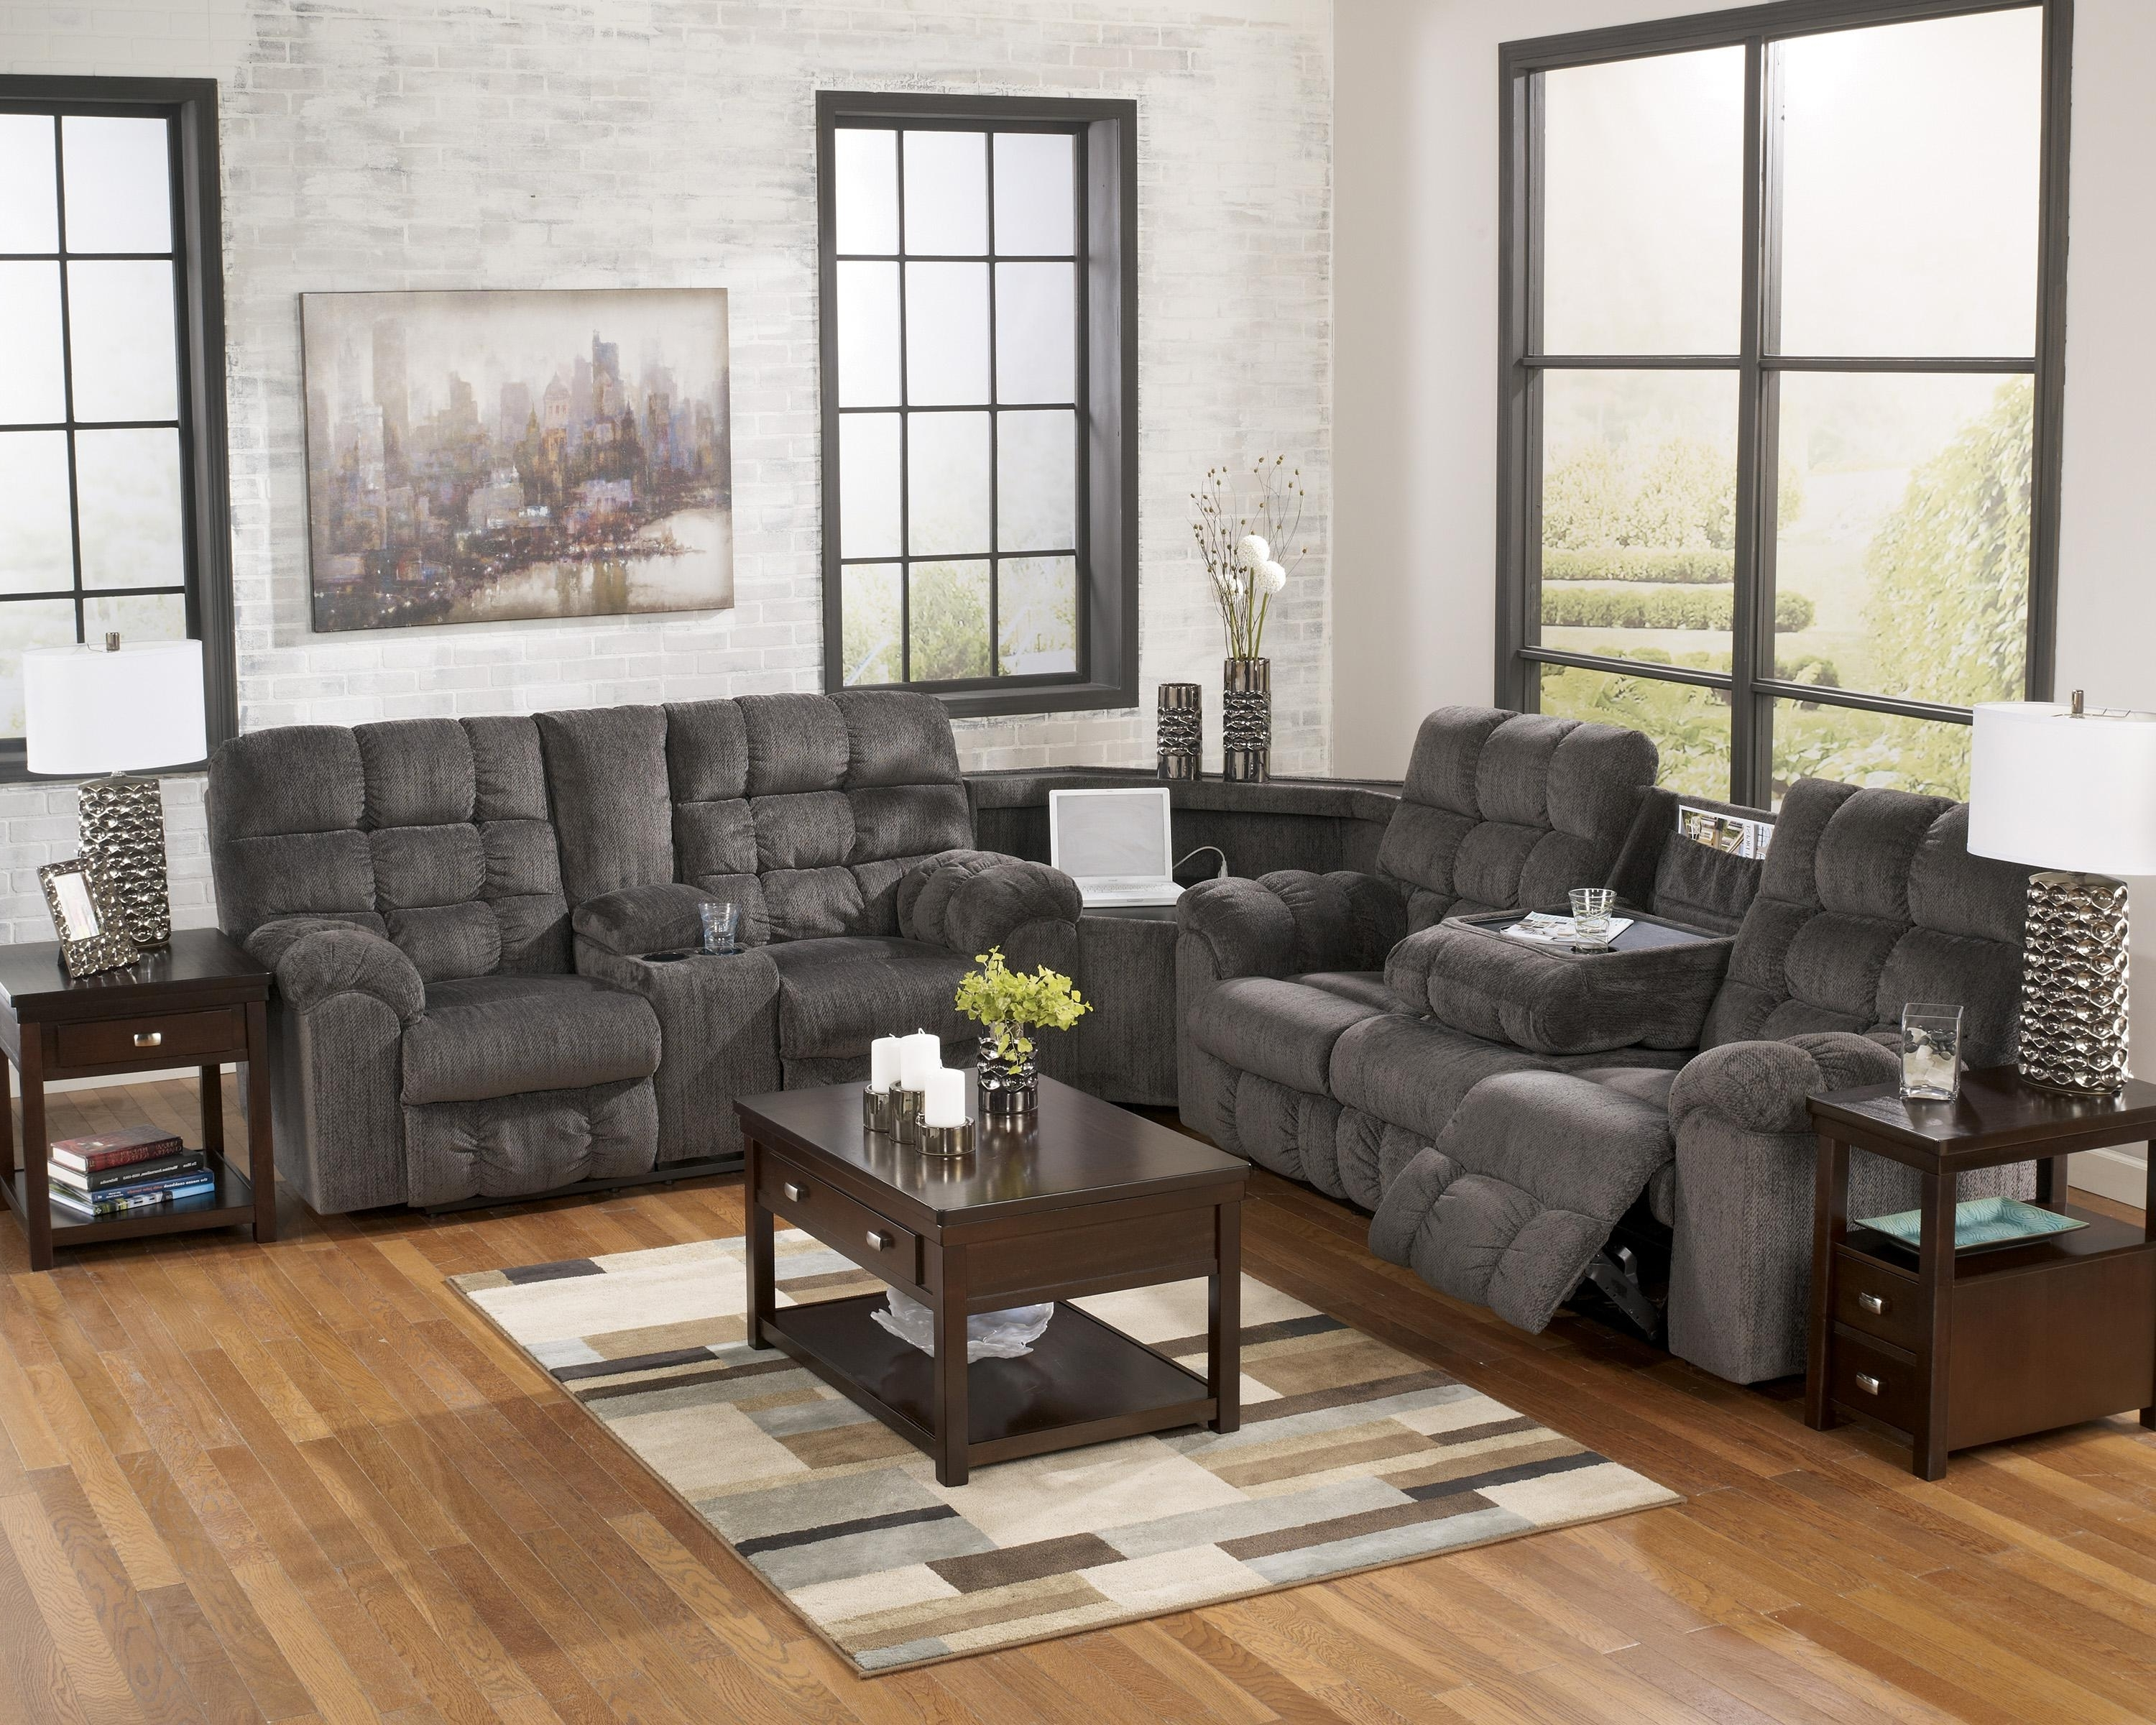 Trendy Reclining Sectional Sofa With Right Side Loveseat, Cup Holders And Within Las Vegas Sectional Sofas (View 2 of 20)